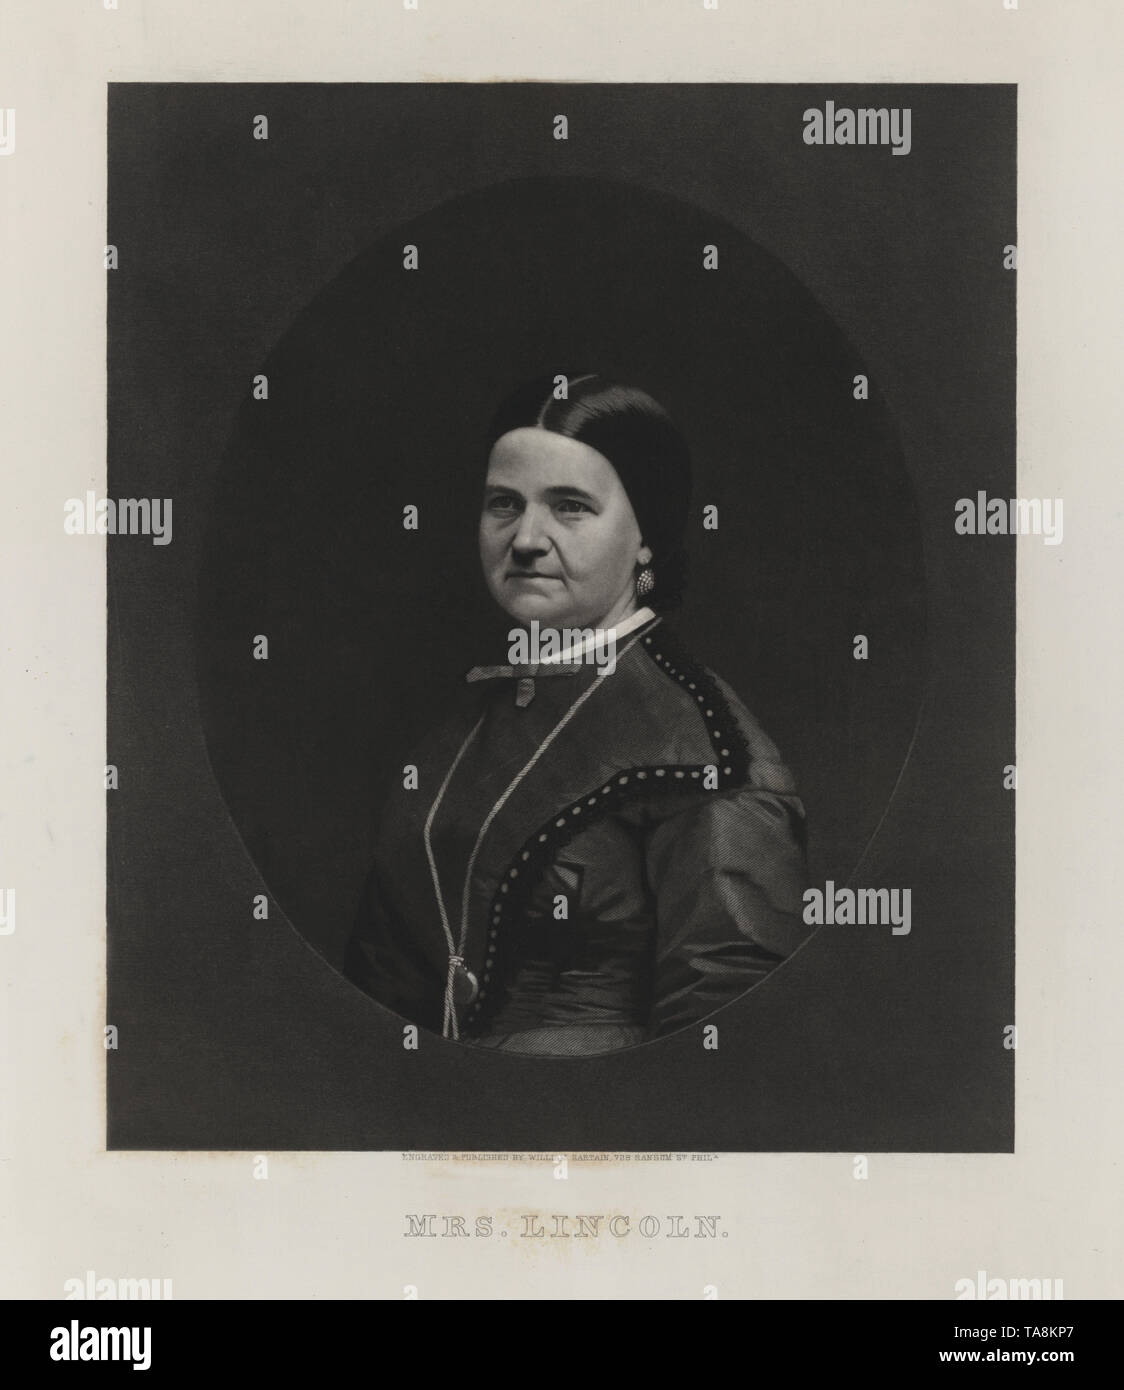 Mrs. Lincoln, Half-Length Portrait of First Lady Mary Todd Lincoln, Engraved and Published by William Sartain, early 1860's - Stock Image